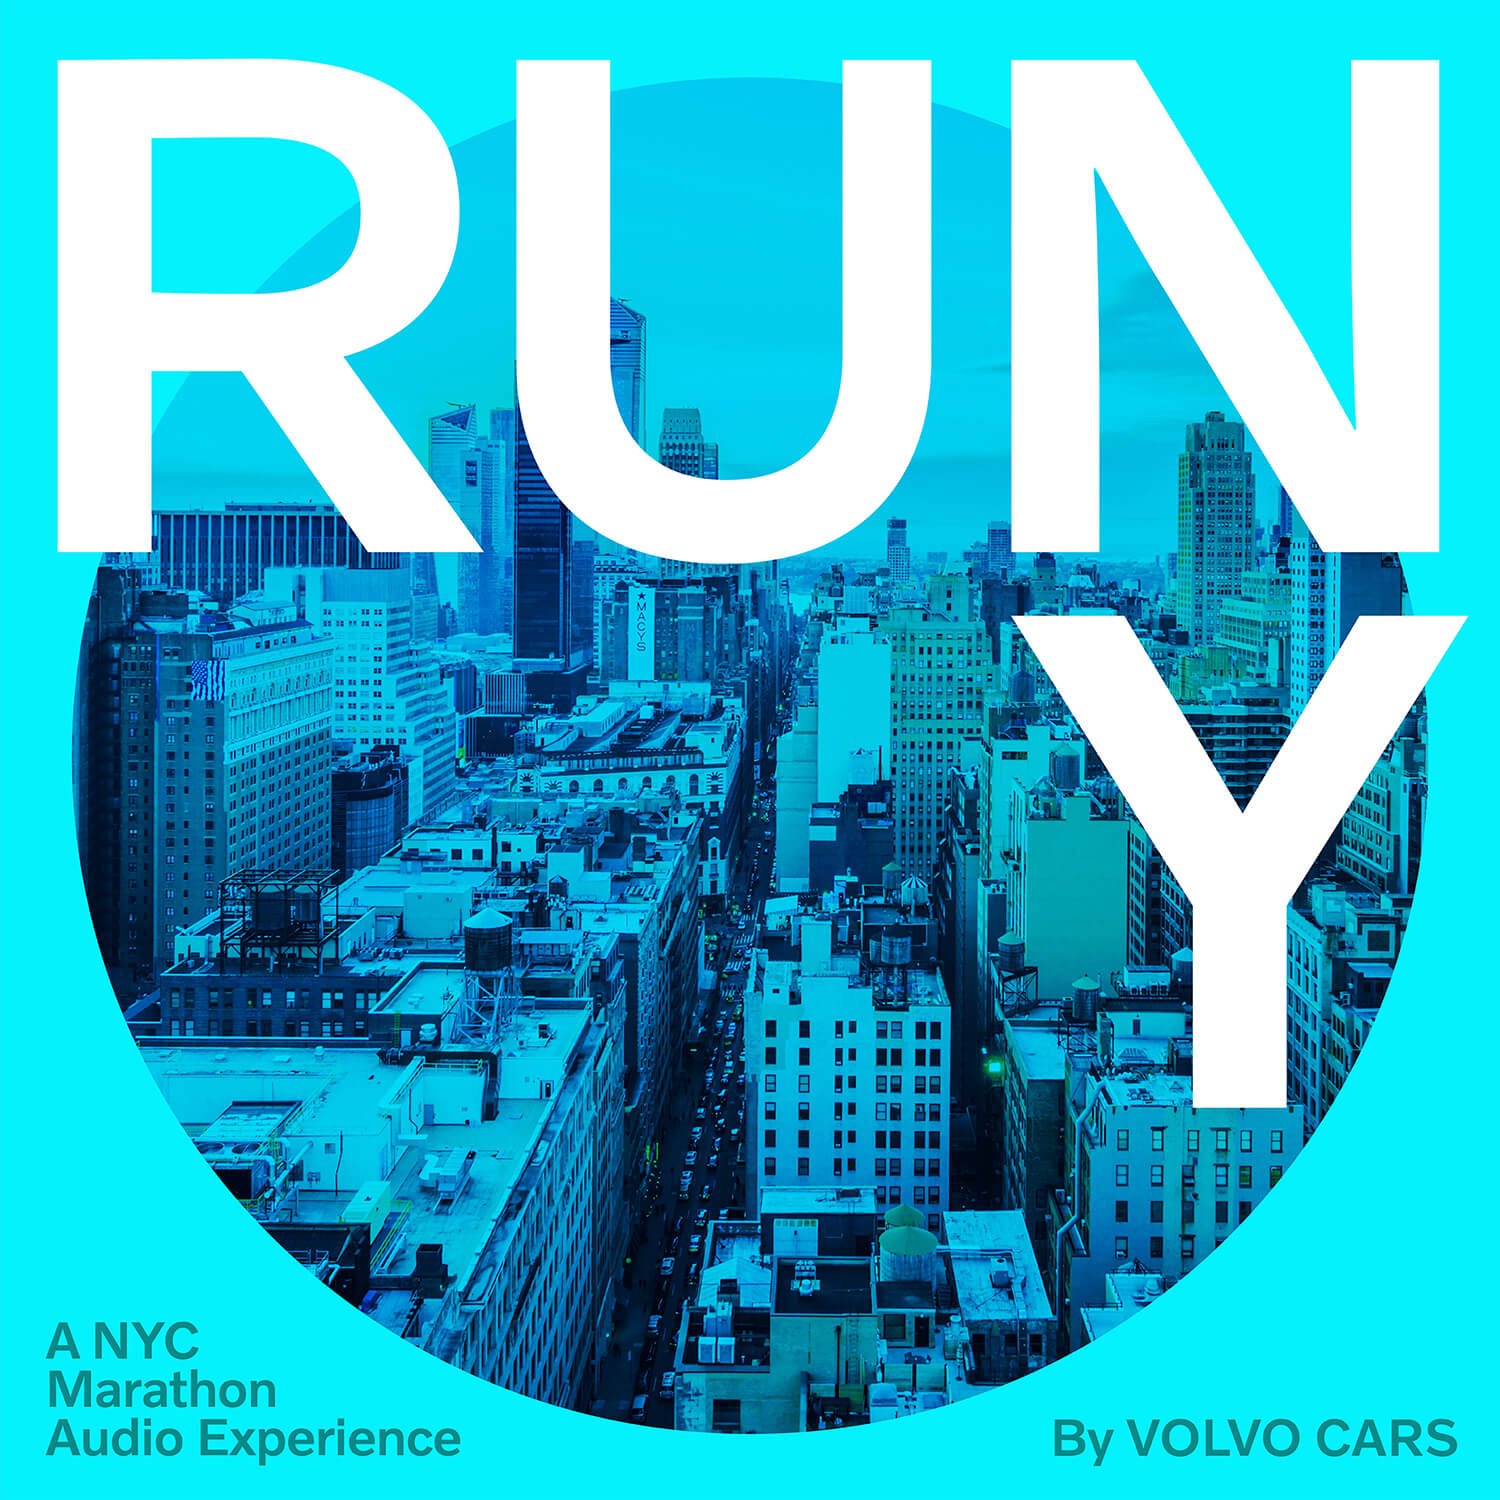 Experience New York City Marathon in an audio poem by Volvo Cars